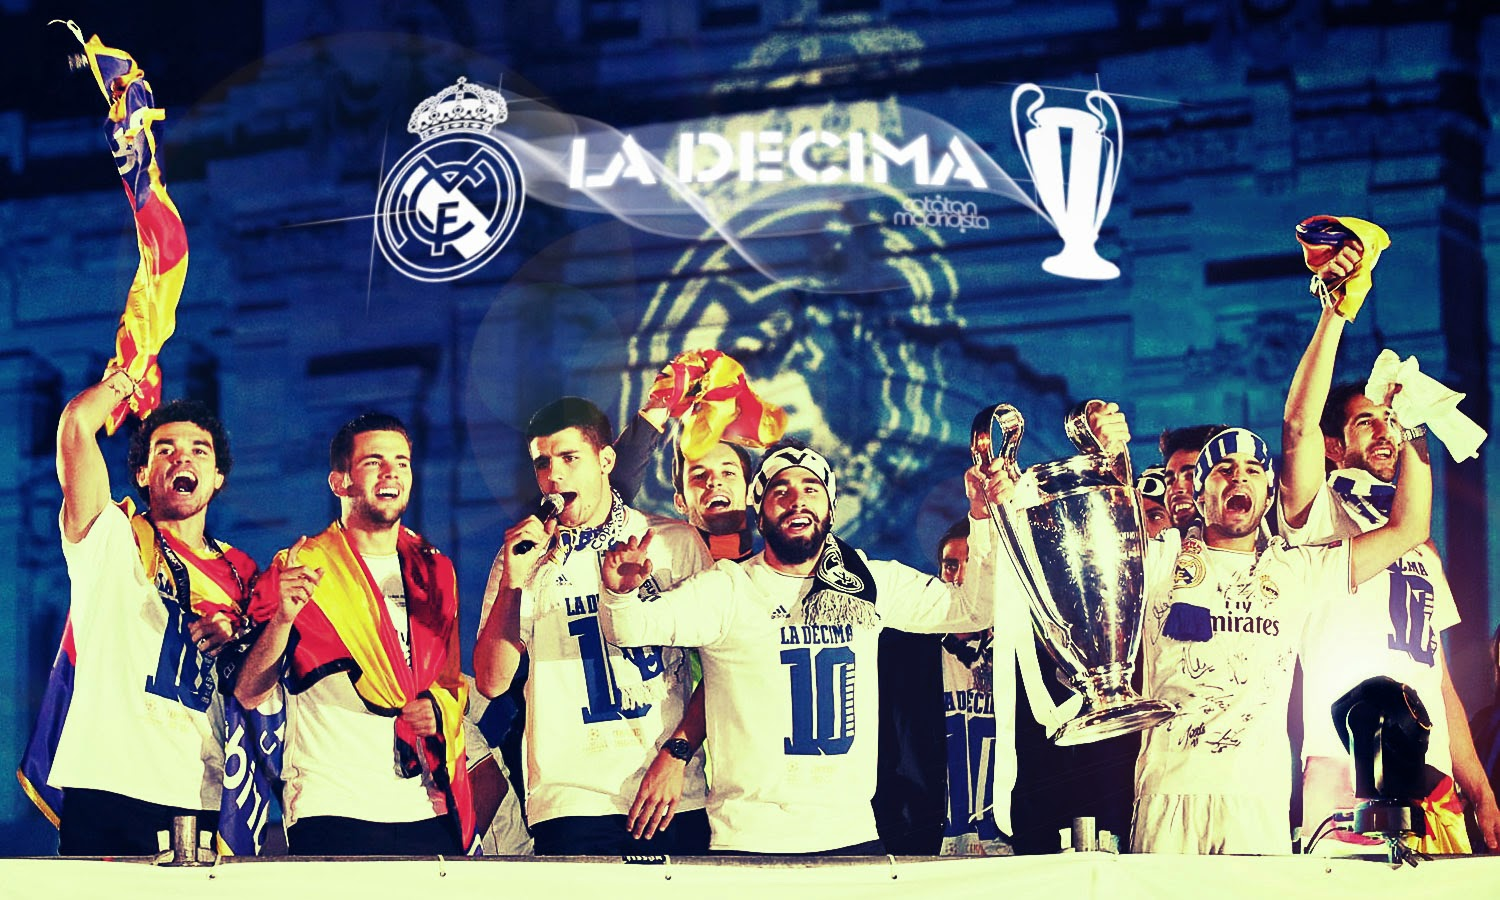 Hd Diwali Wallpapers Free Download Real Madrid La Decima Wallpaper Gallery